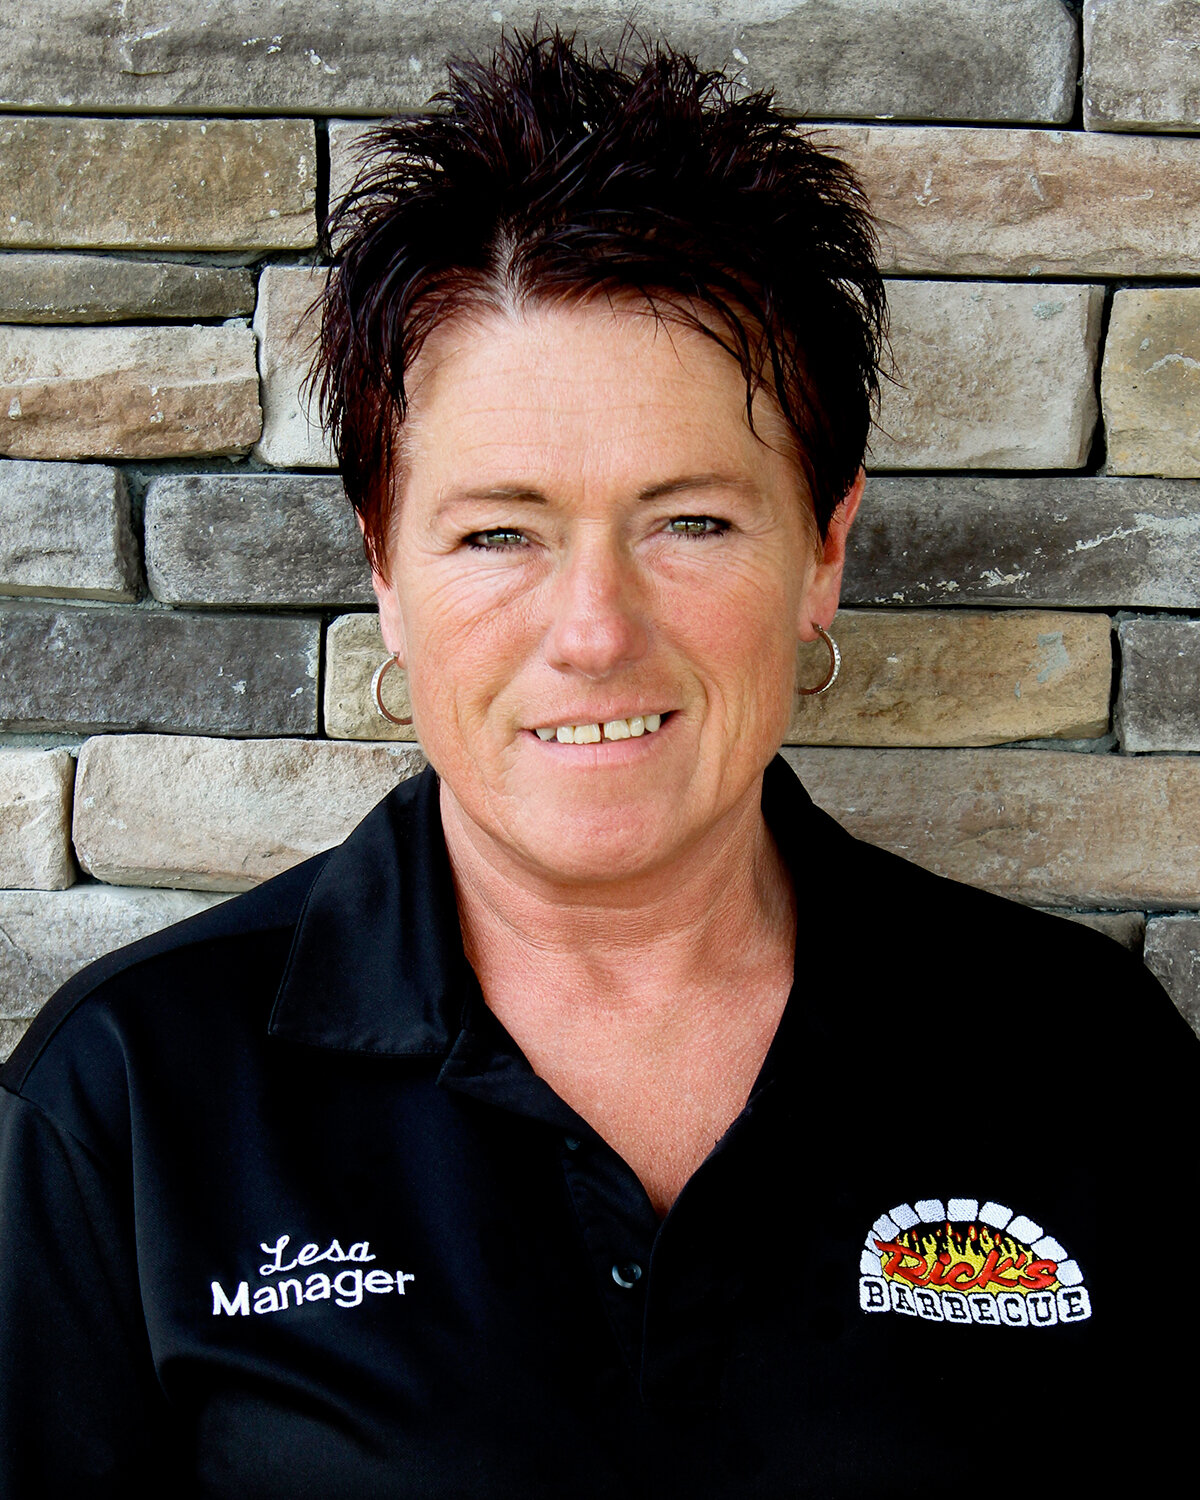 lawrenceburg manager: lisa wright    lwright@ricksbbq.com